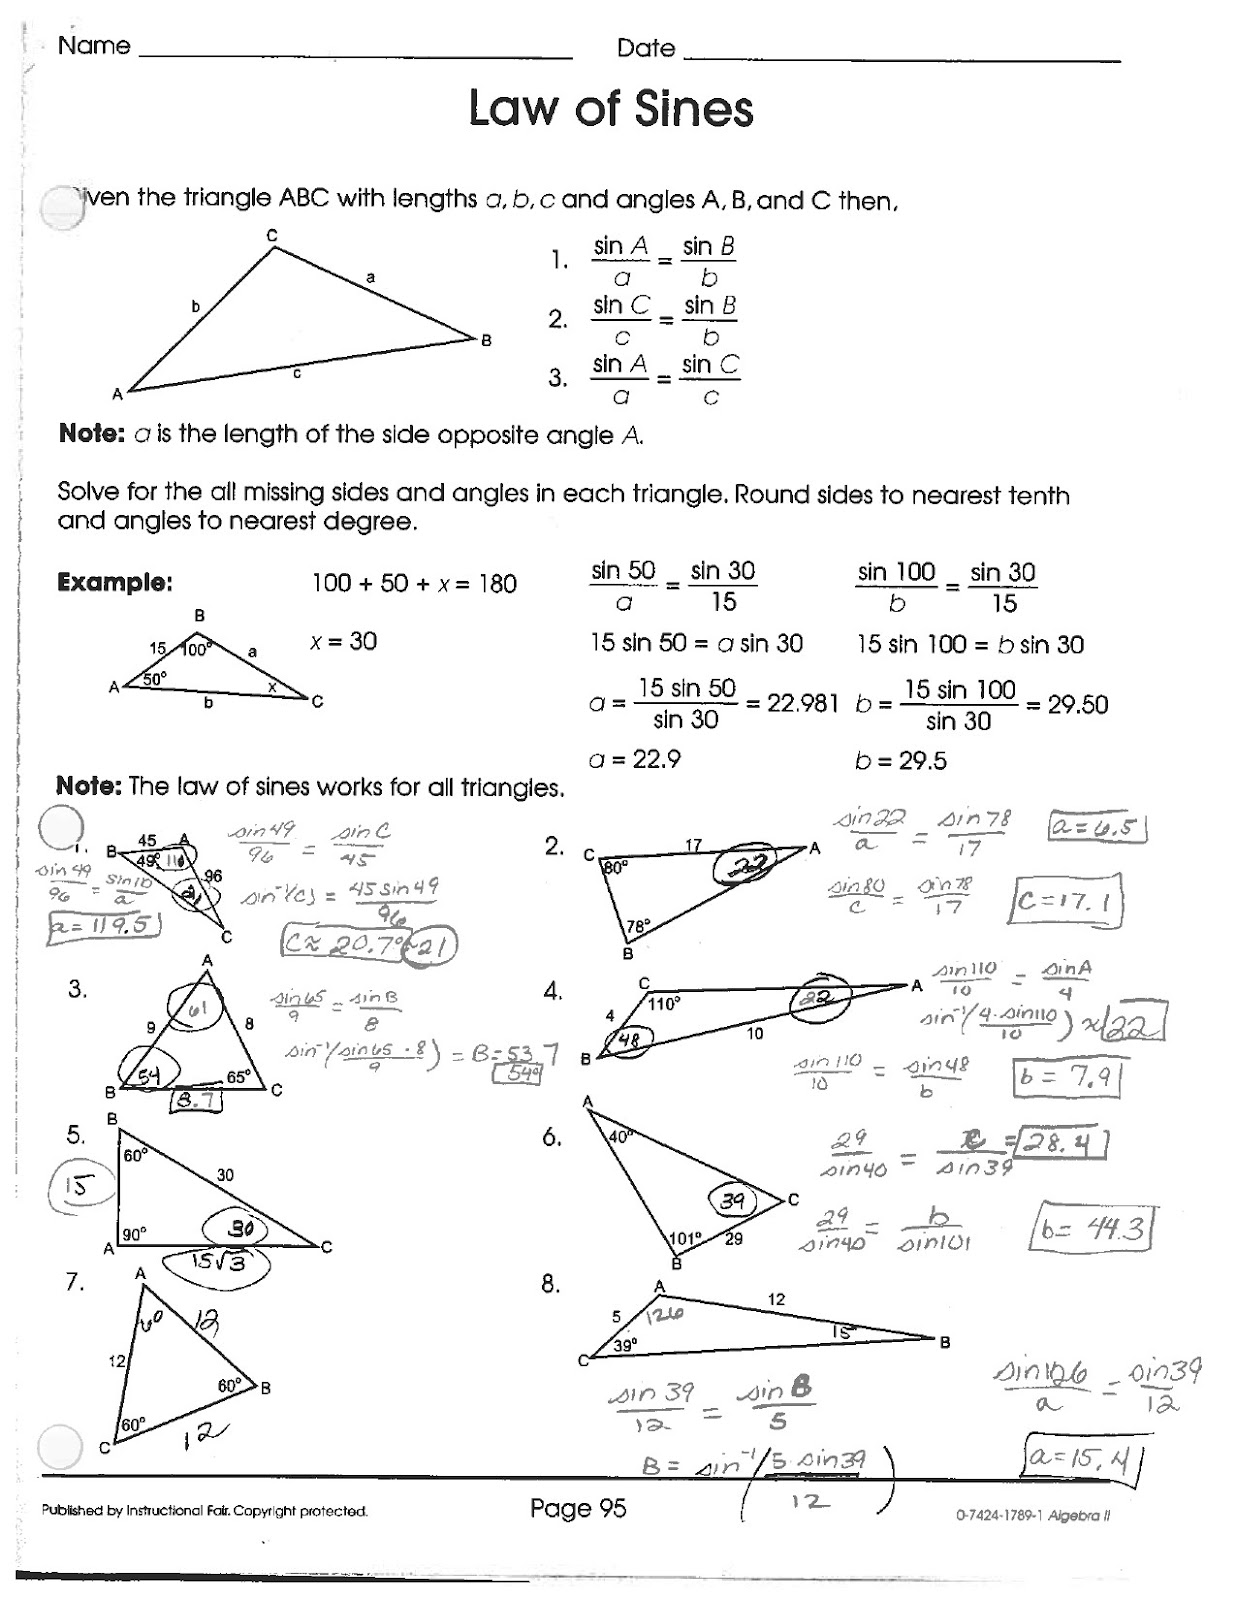 Math Classes Spring 2012 PreCalc Laws of Sines and Cosines – Law of Sine and Cosine Worksheet